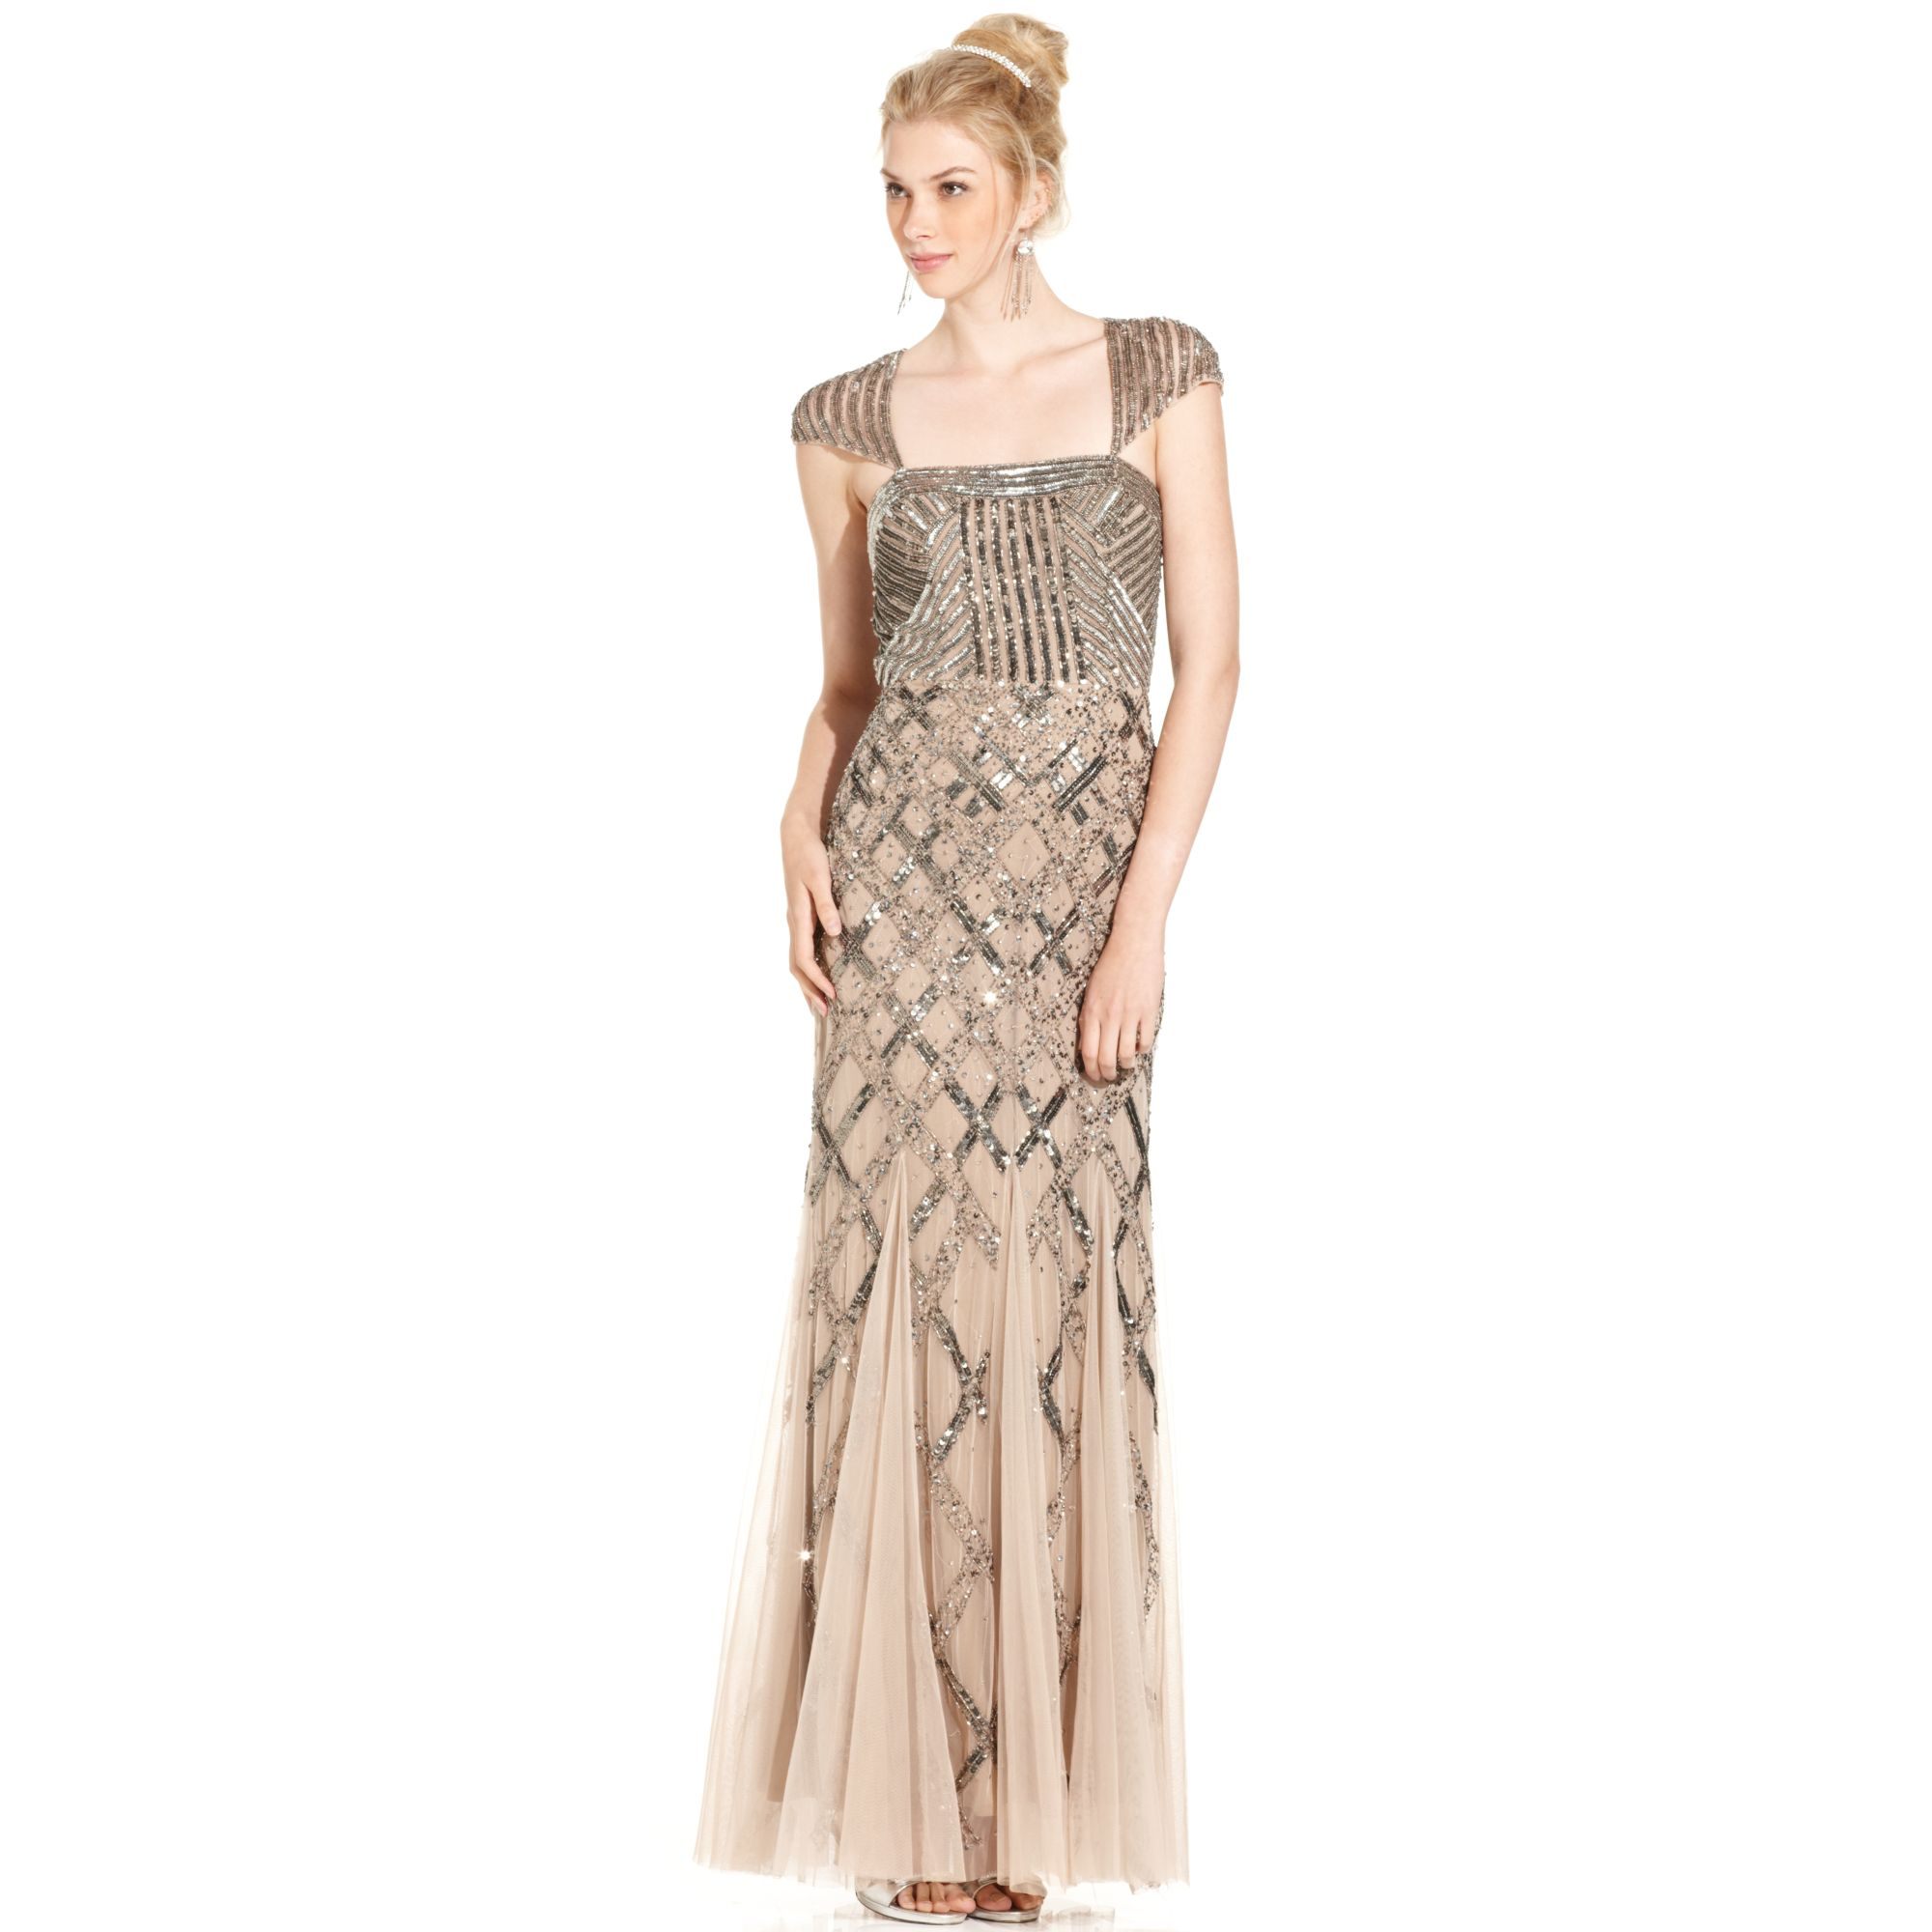 Adrianna Papell Cap Sleeve Sequined Gown In Beige Nude